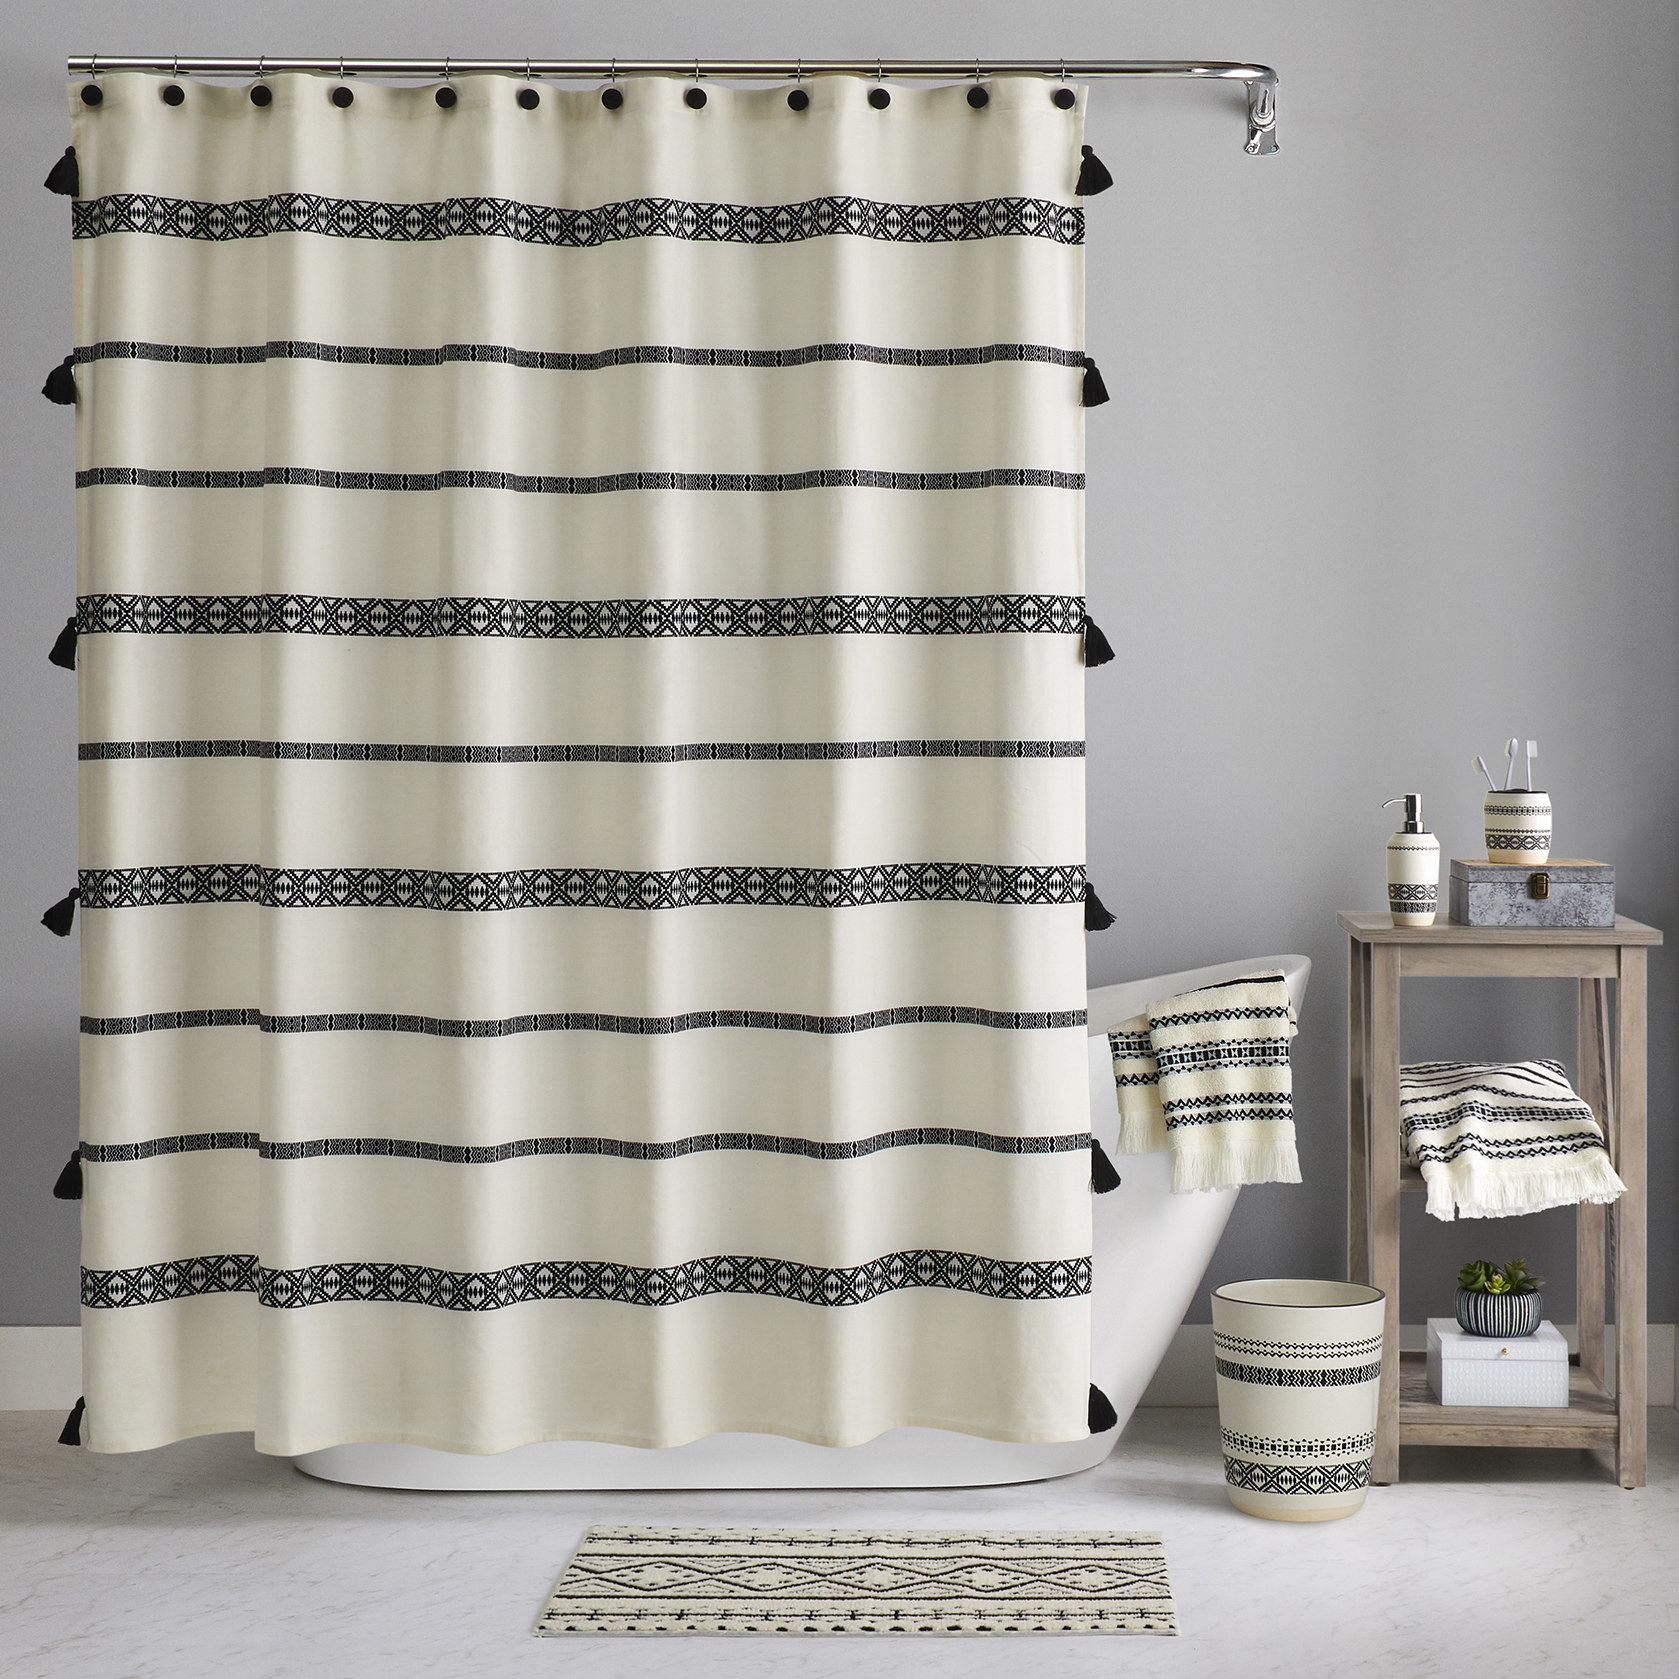 The shower curtain displayed with matching bathroom accessories